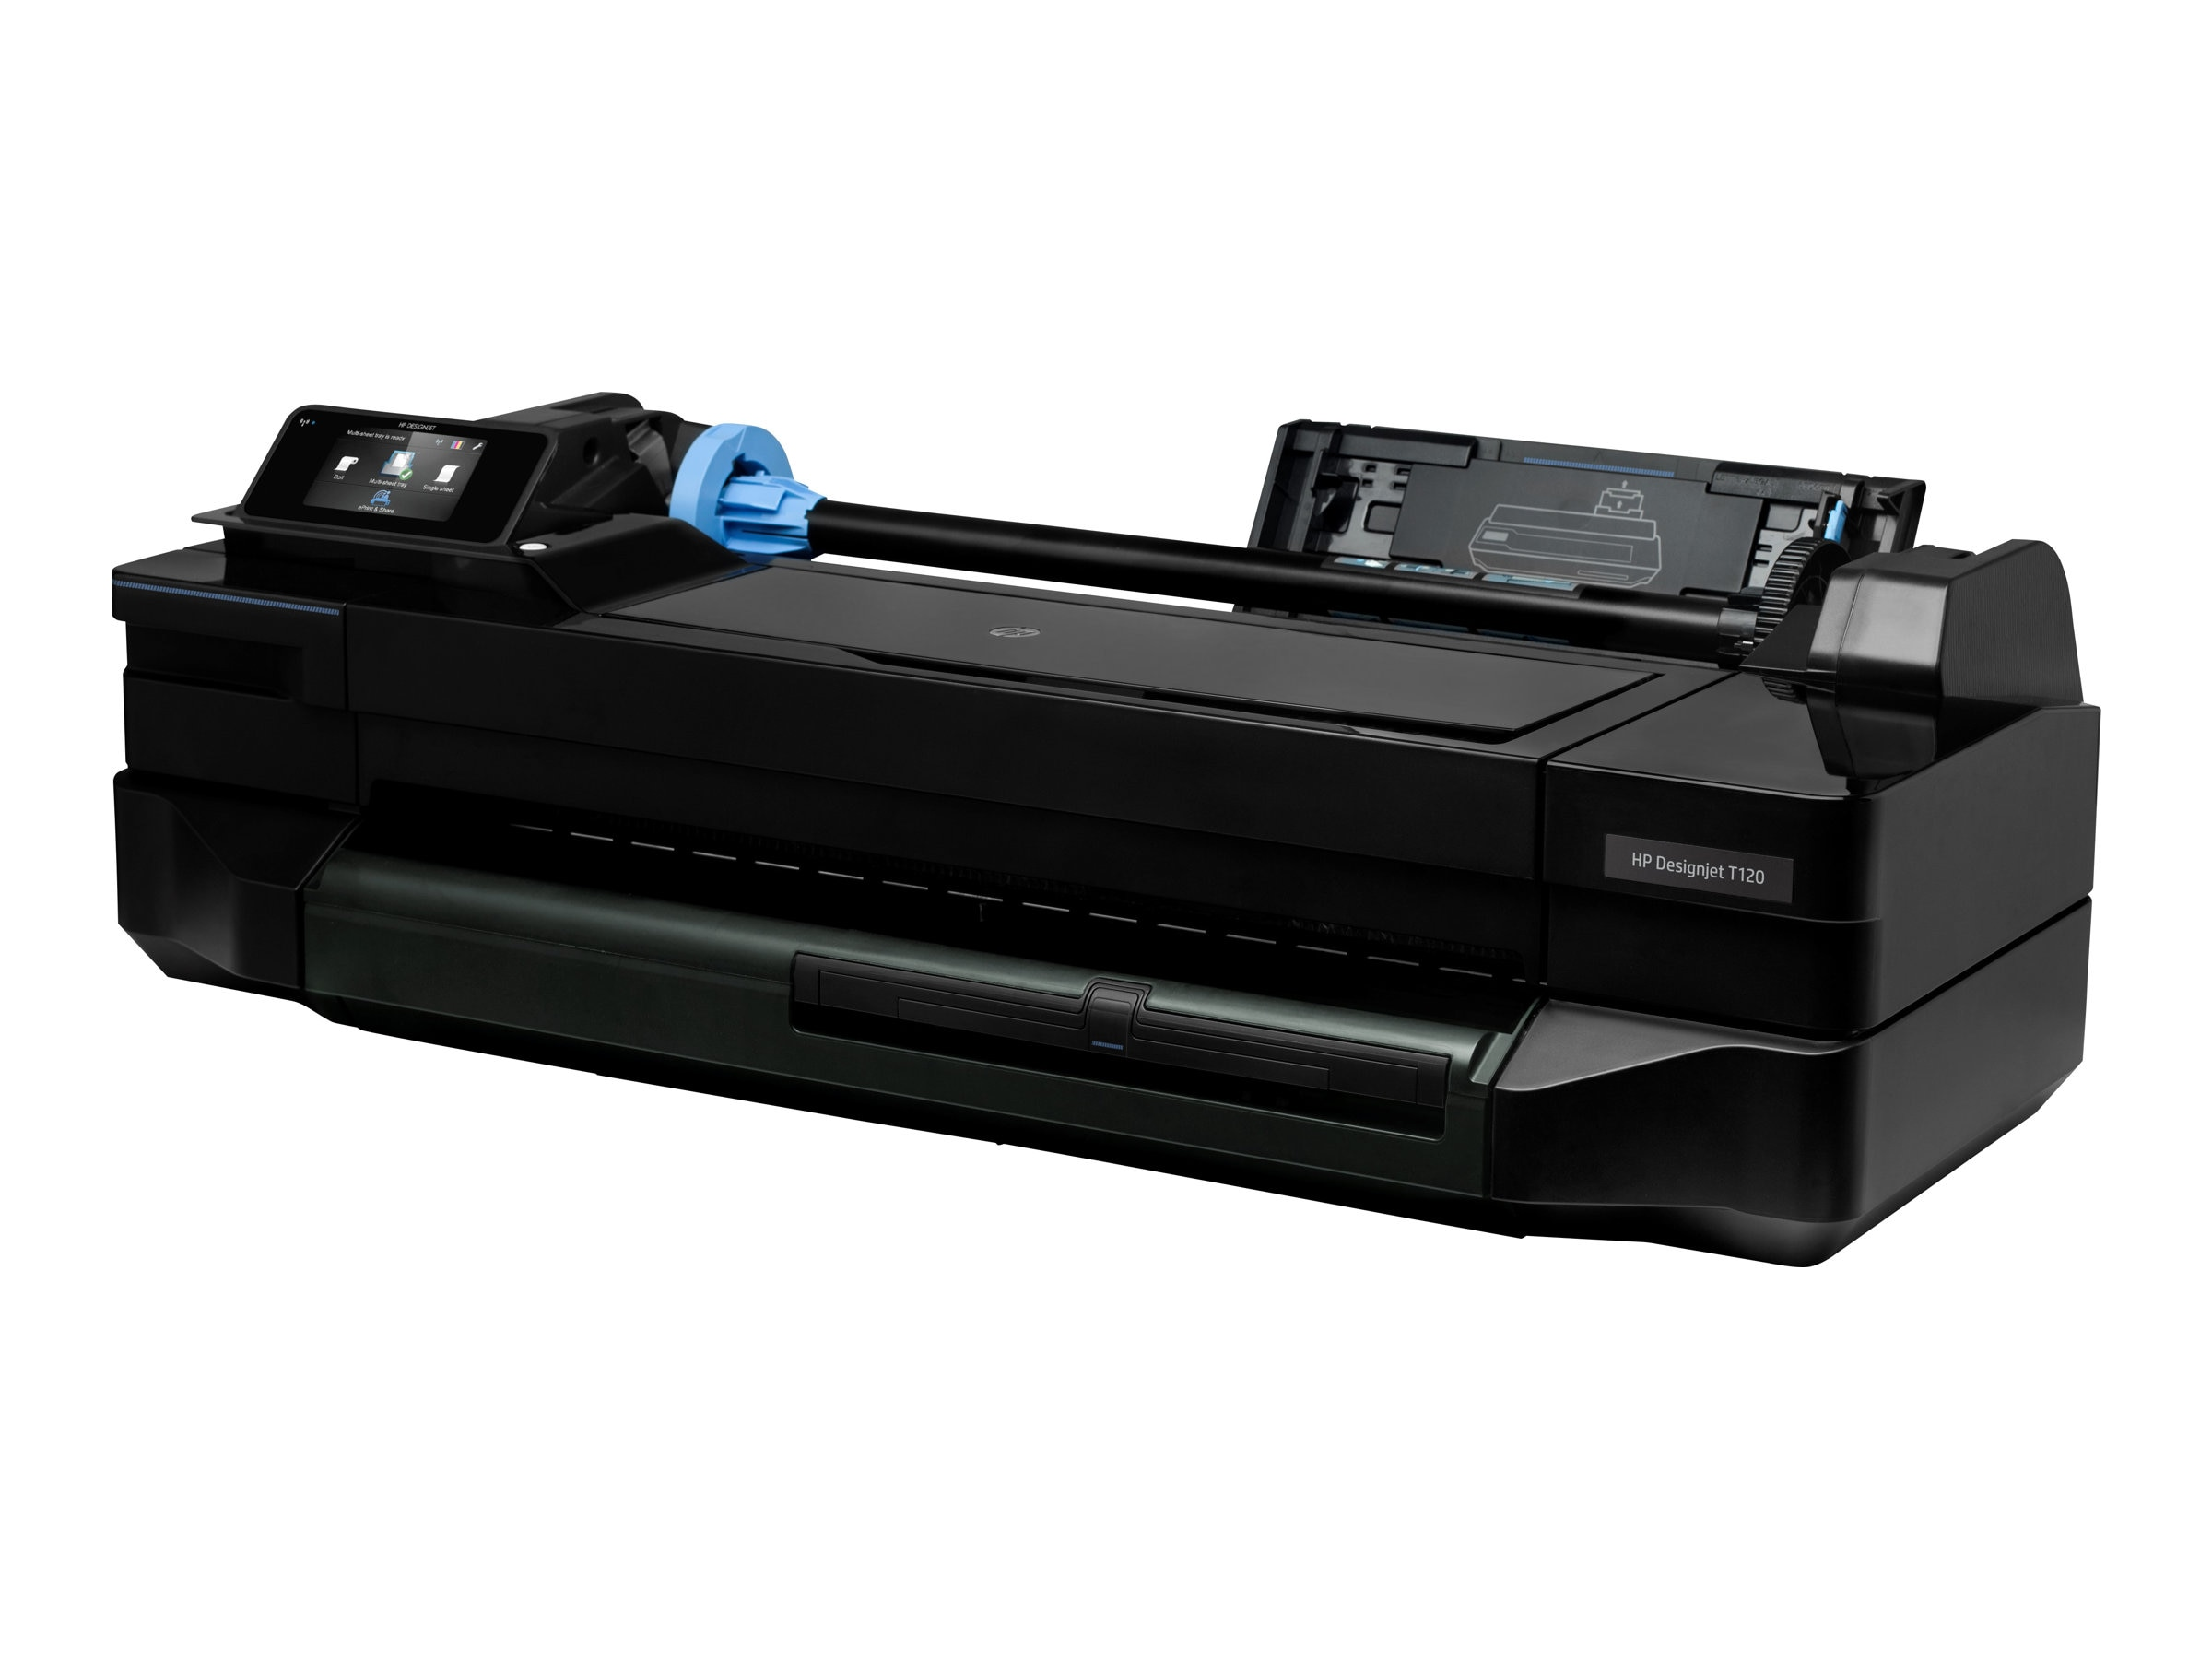 HP Designjet T120 ePrinter ($999 - $100 Instant Rebate = $899 Expires July 31st)